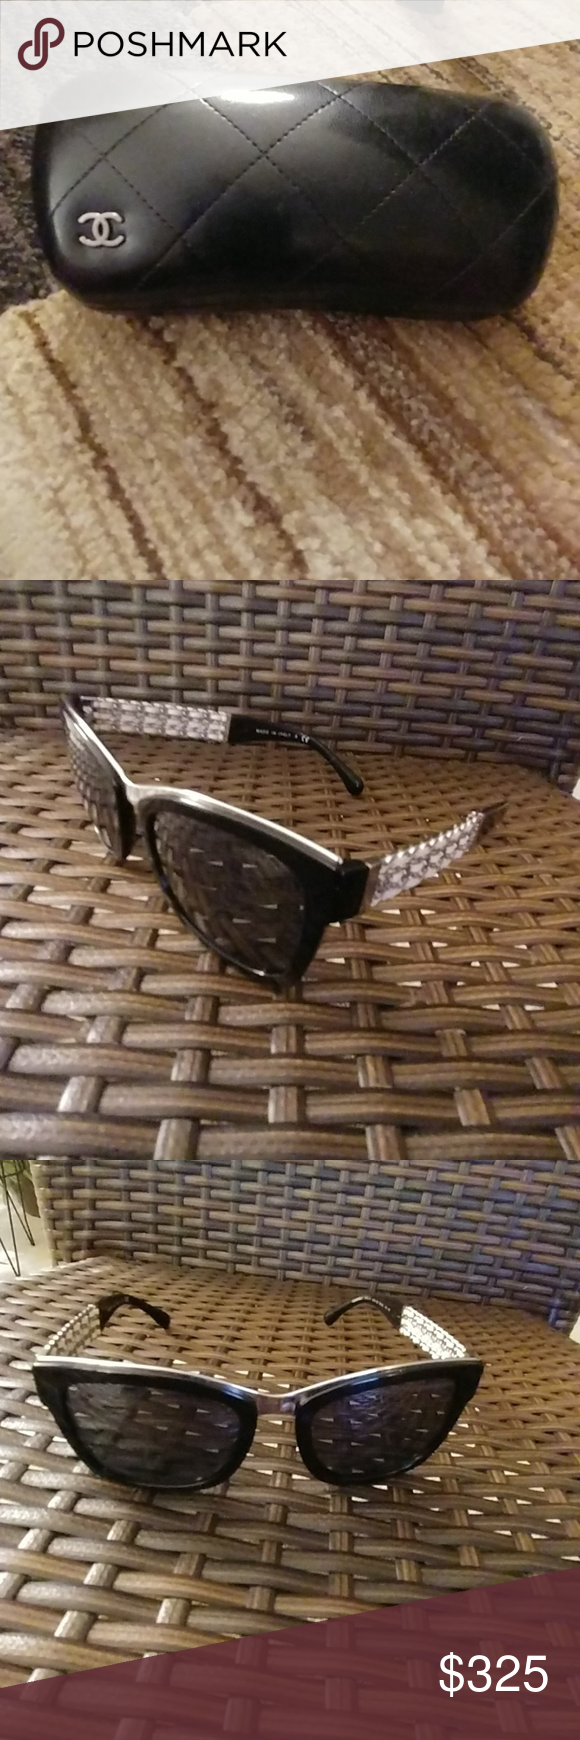 f78f6a9816c0 Chanel 5362Q Black with Silver Detail Sunglasses Chanel Women s Square  Framed Mirrored Sunglasses. Like New